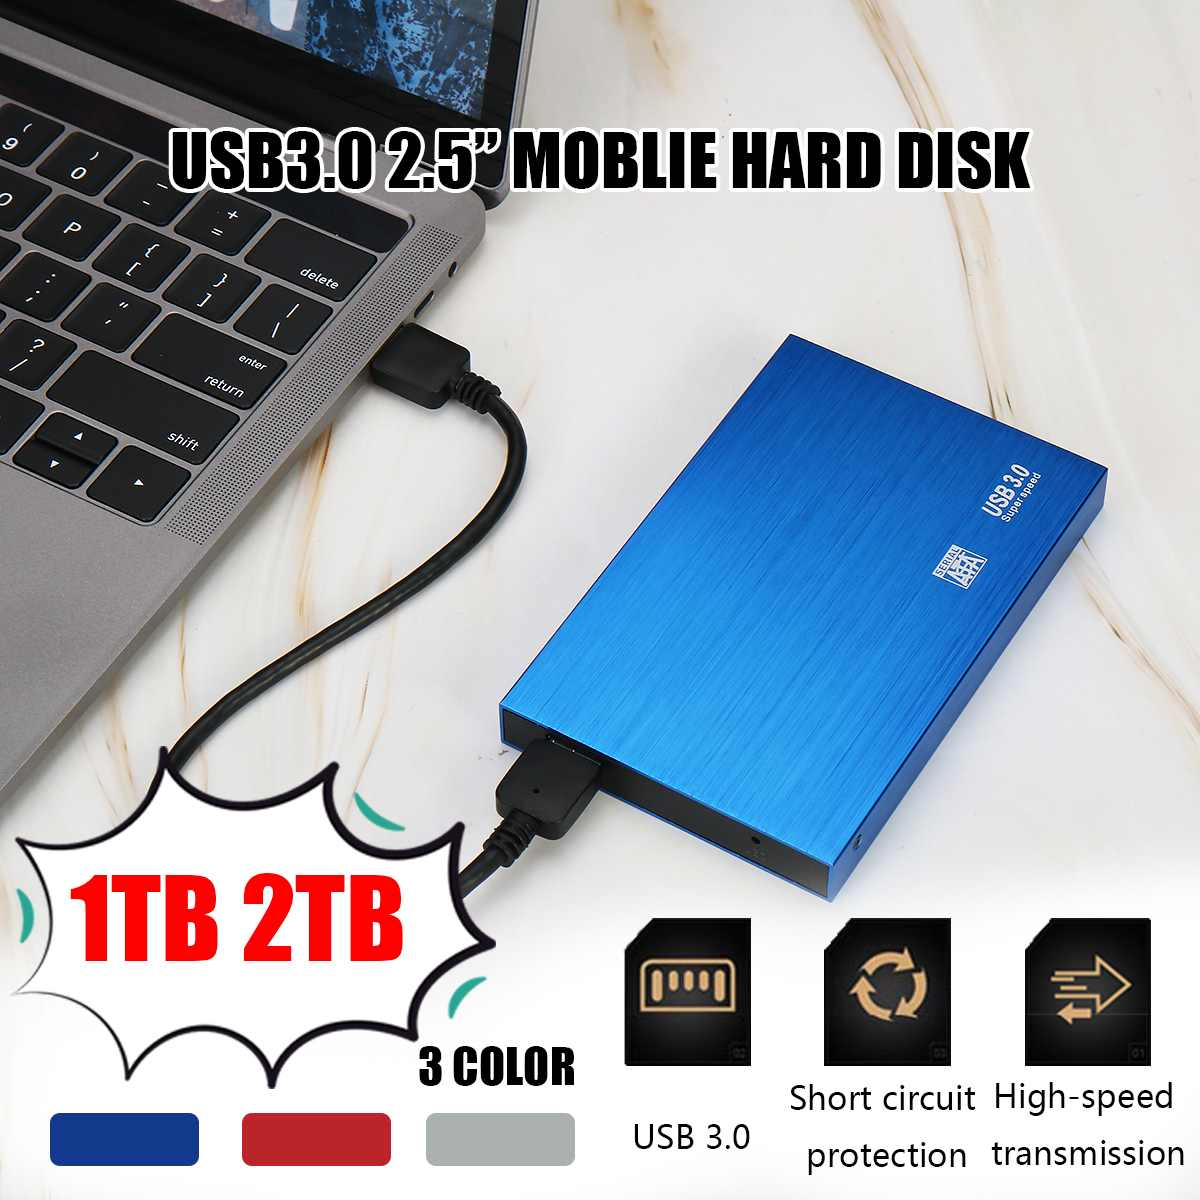 2.5 External Hard Drive Storage USB3.0 HDD Anti-vibration And Anti-fall Mobile Hard Disk For Mac TV Box 1TB 2TB